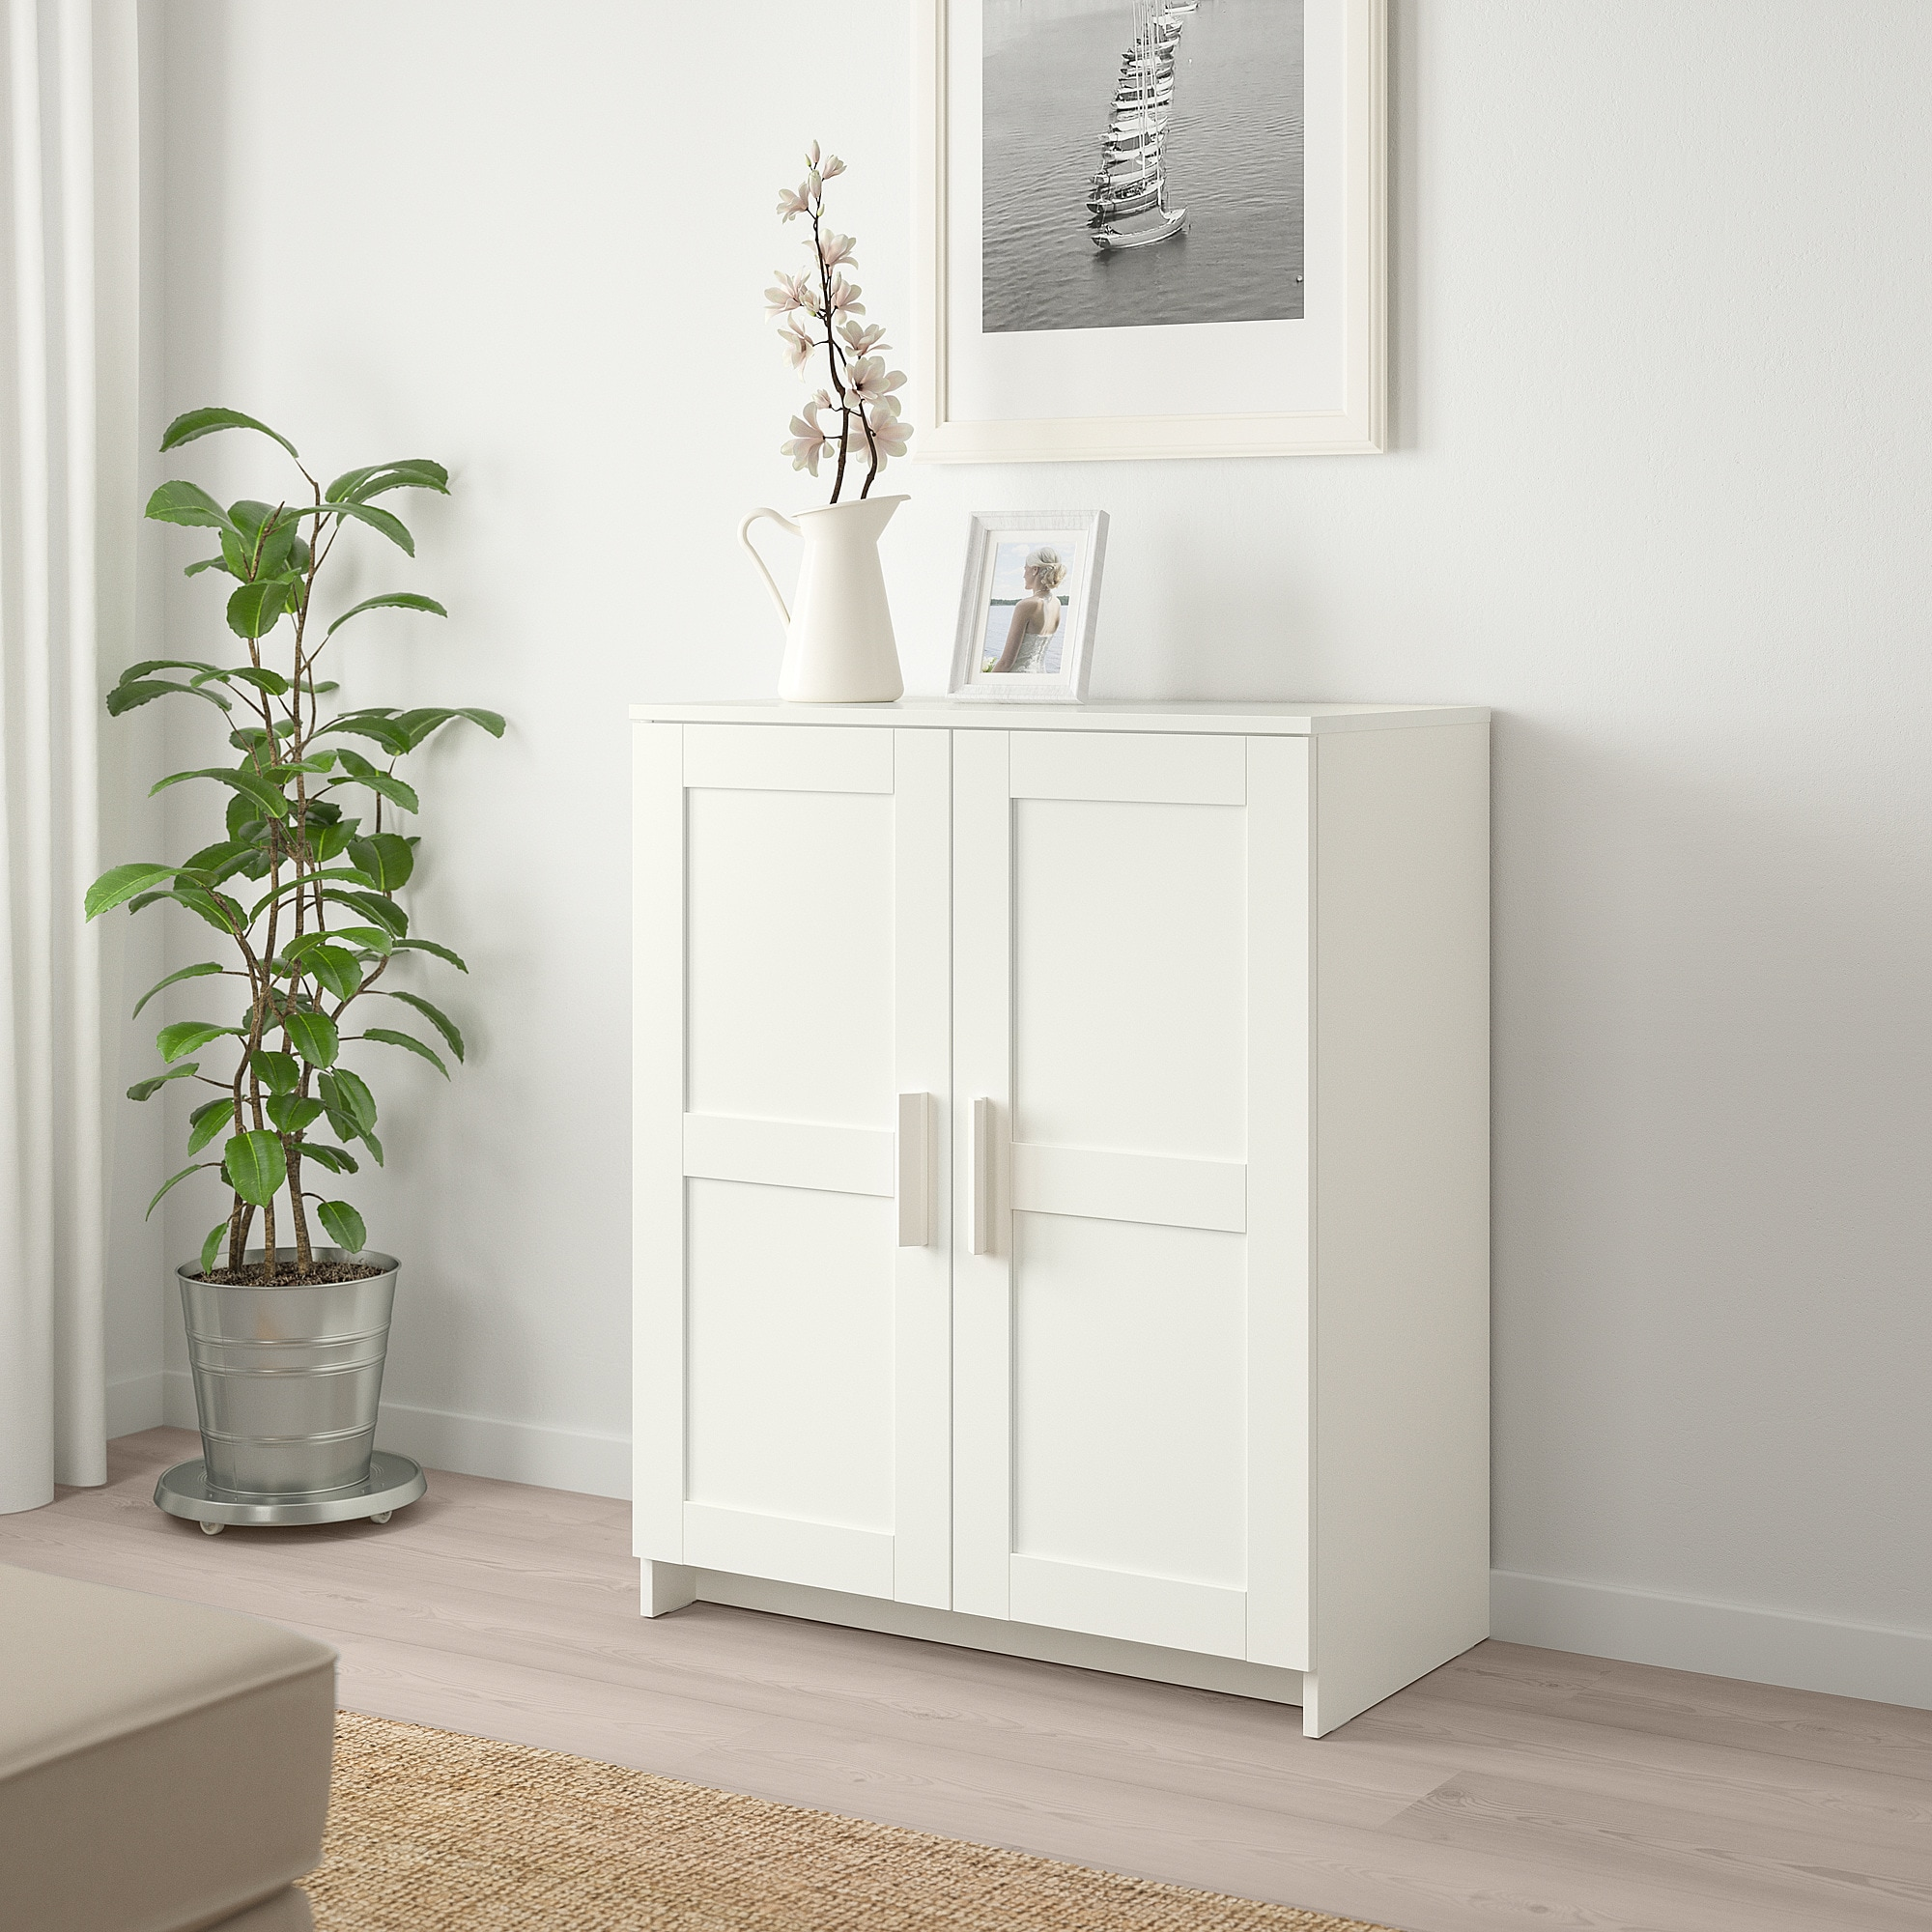 Ikea Brimnes Cabinet With Doors White Small Storage Cabinet